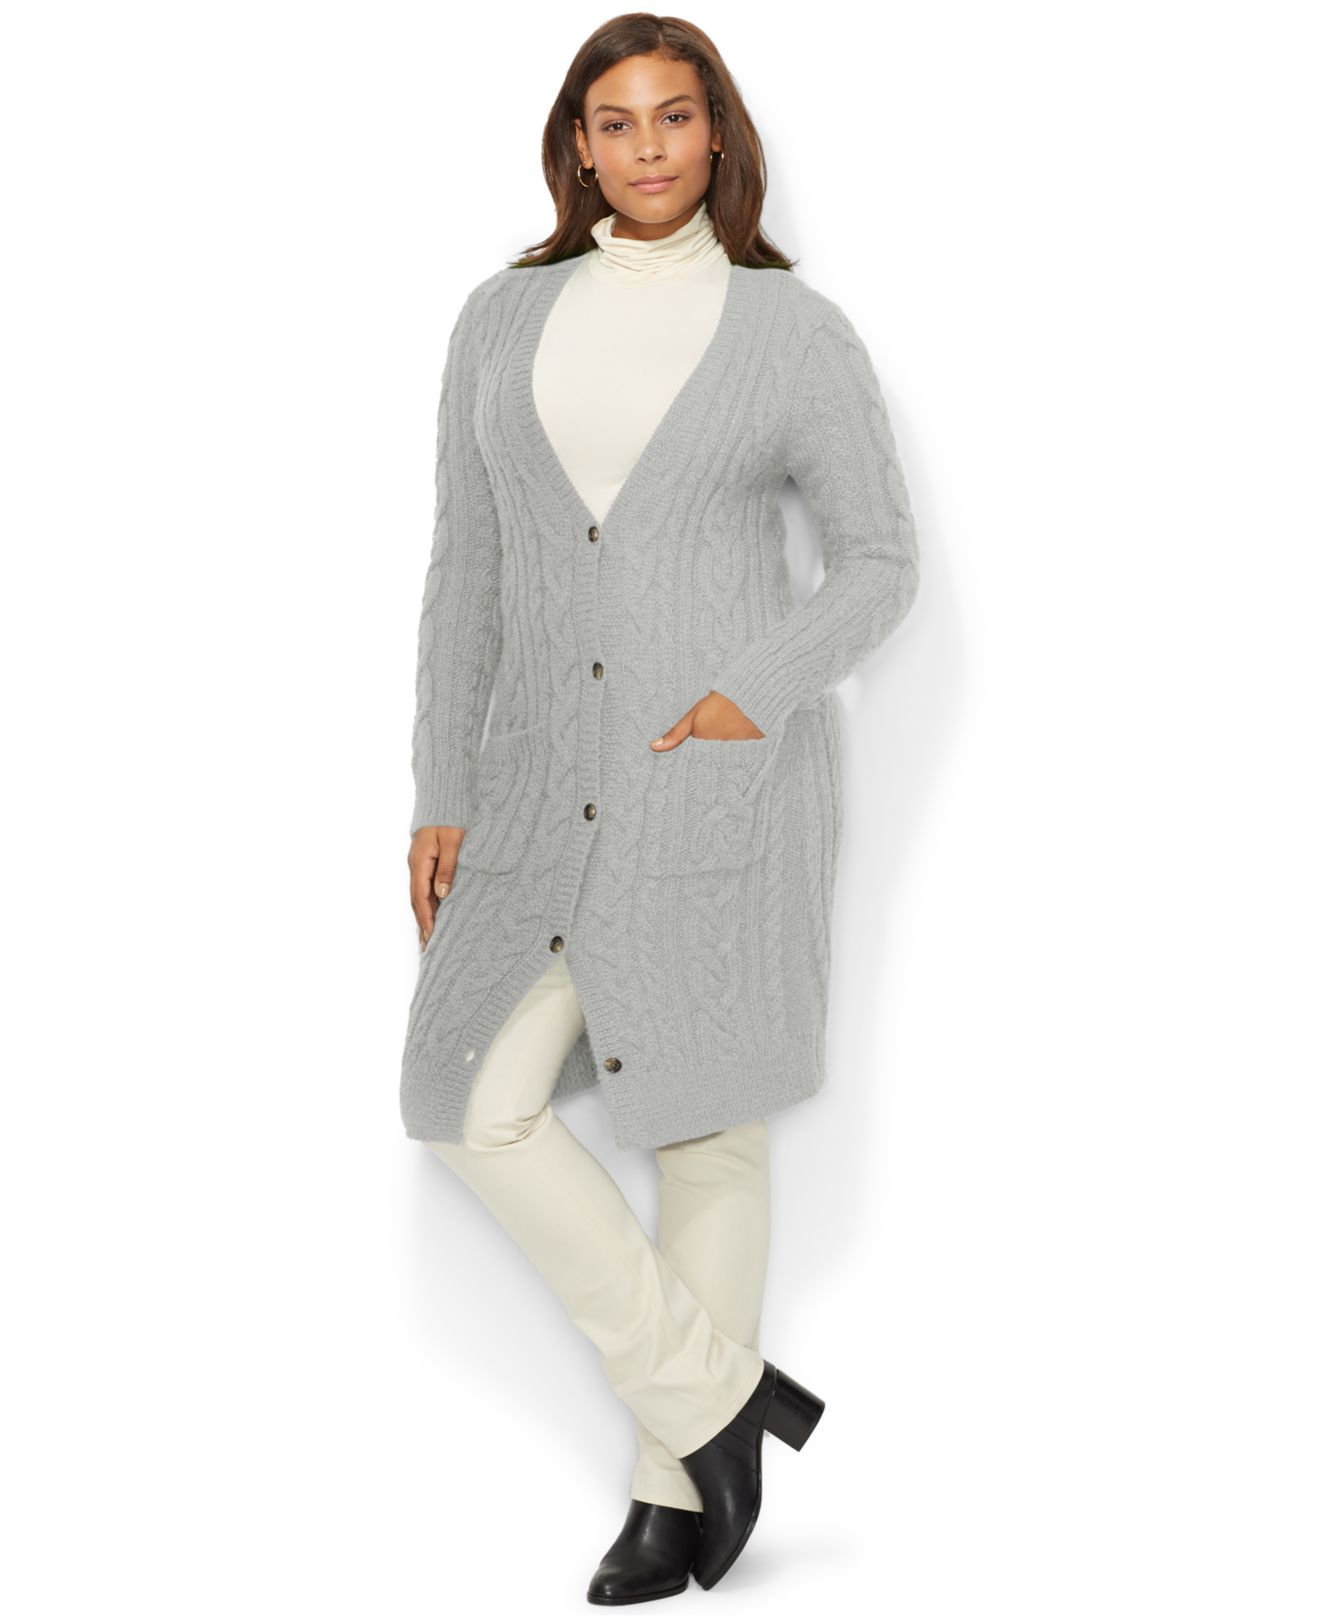 Lauren by ralph lauren Plus Size Cable-Knit Sweater Coat in Gray ...